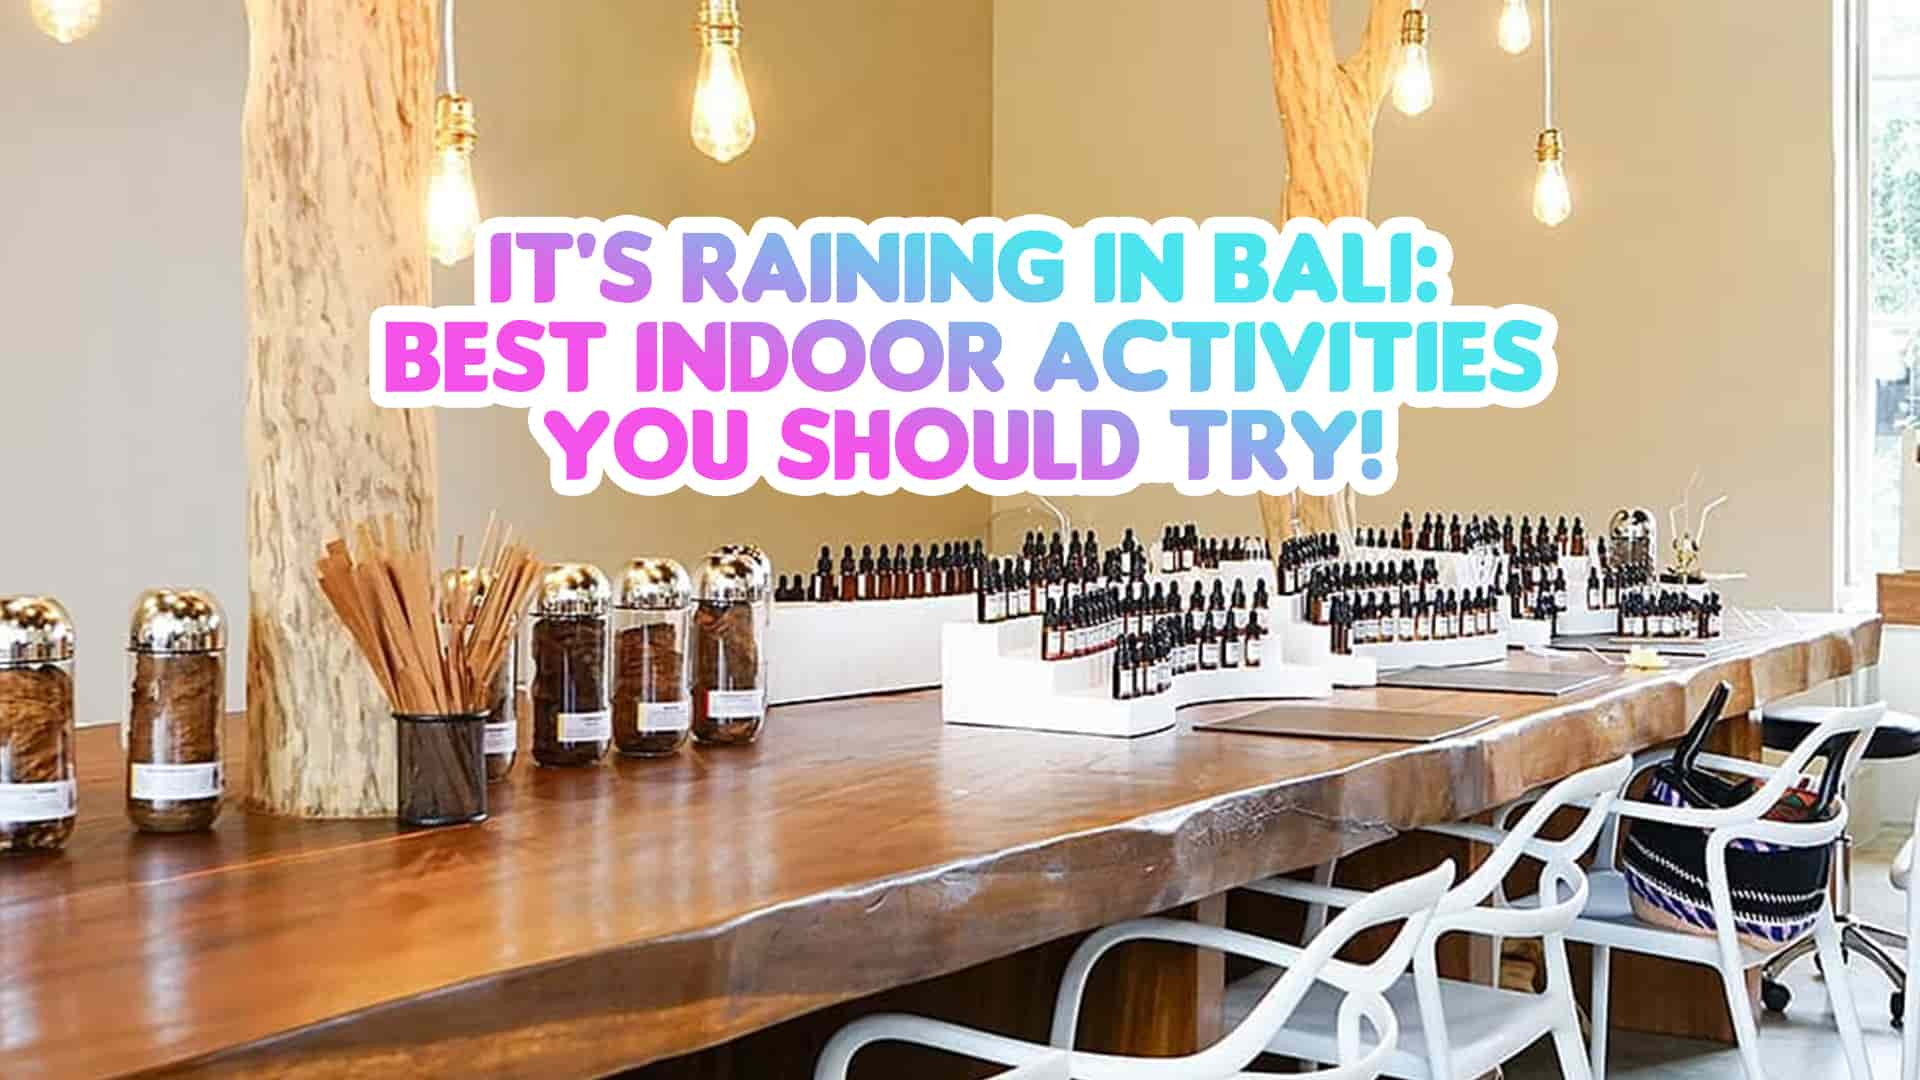 indoor activities in bali when it's raining